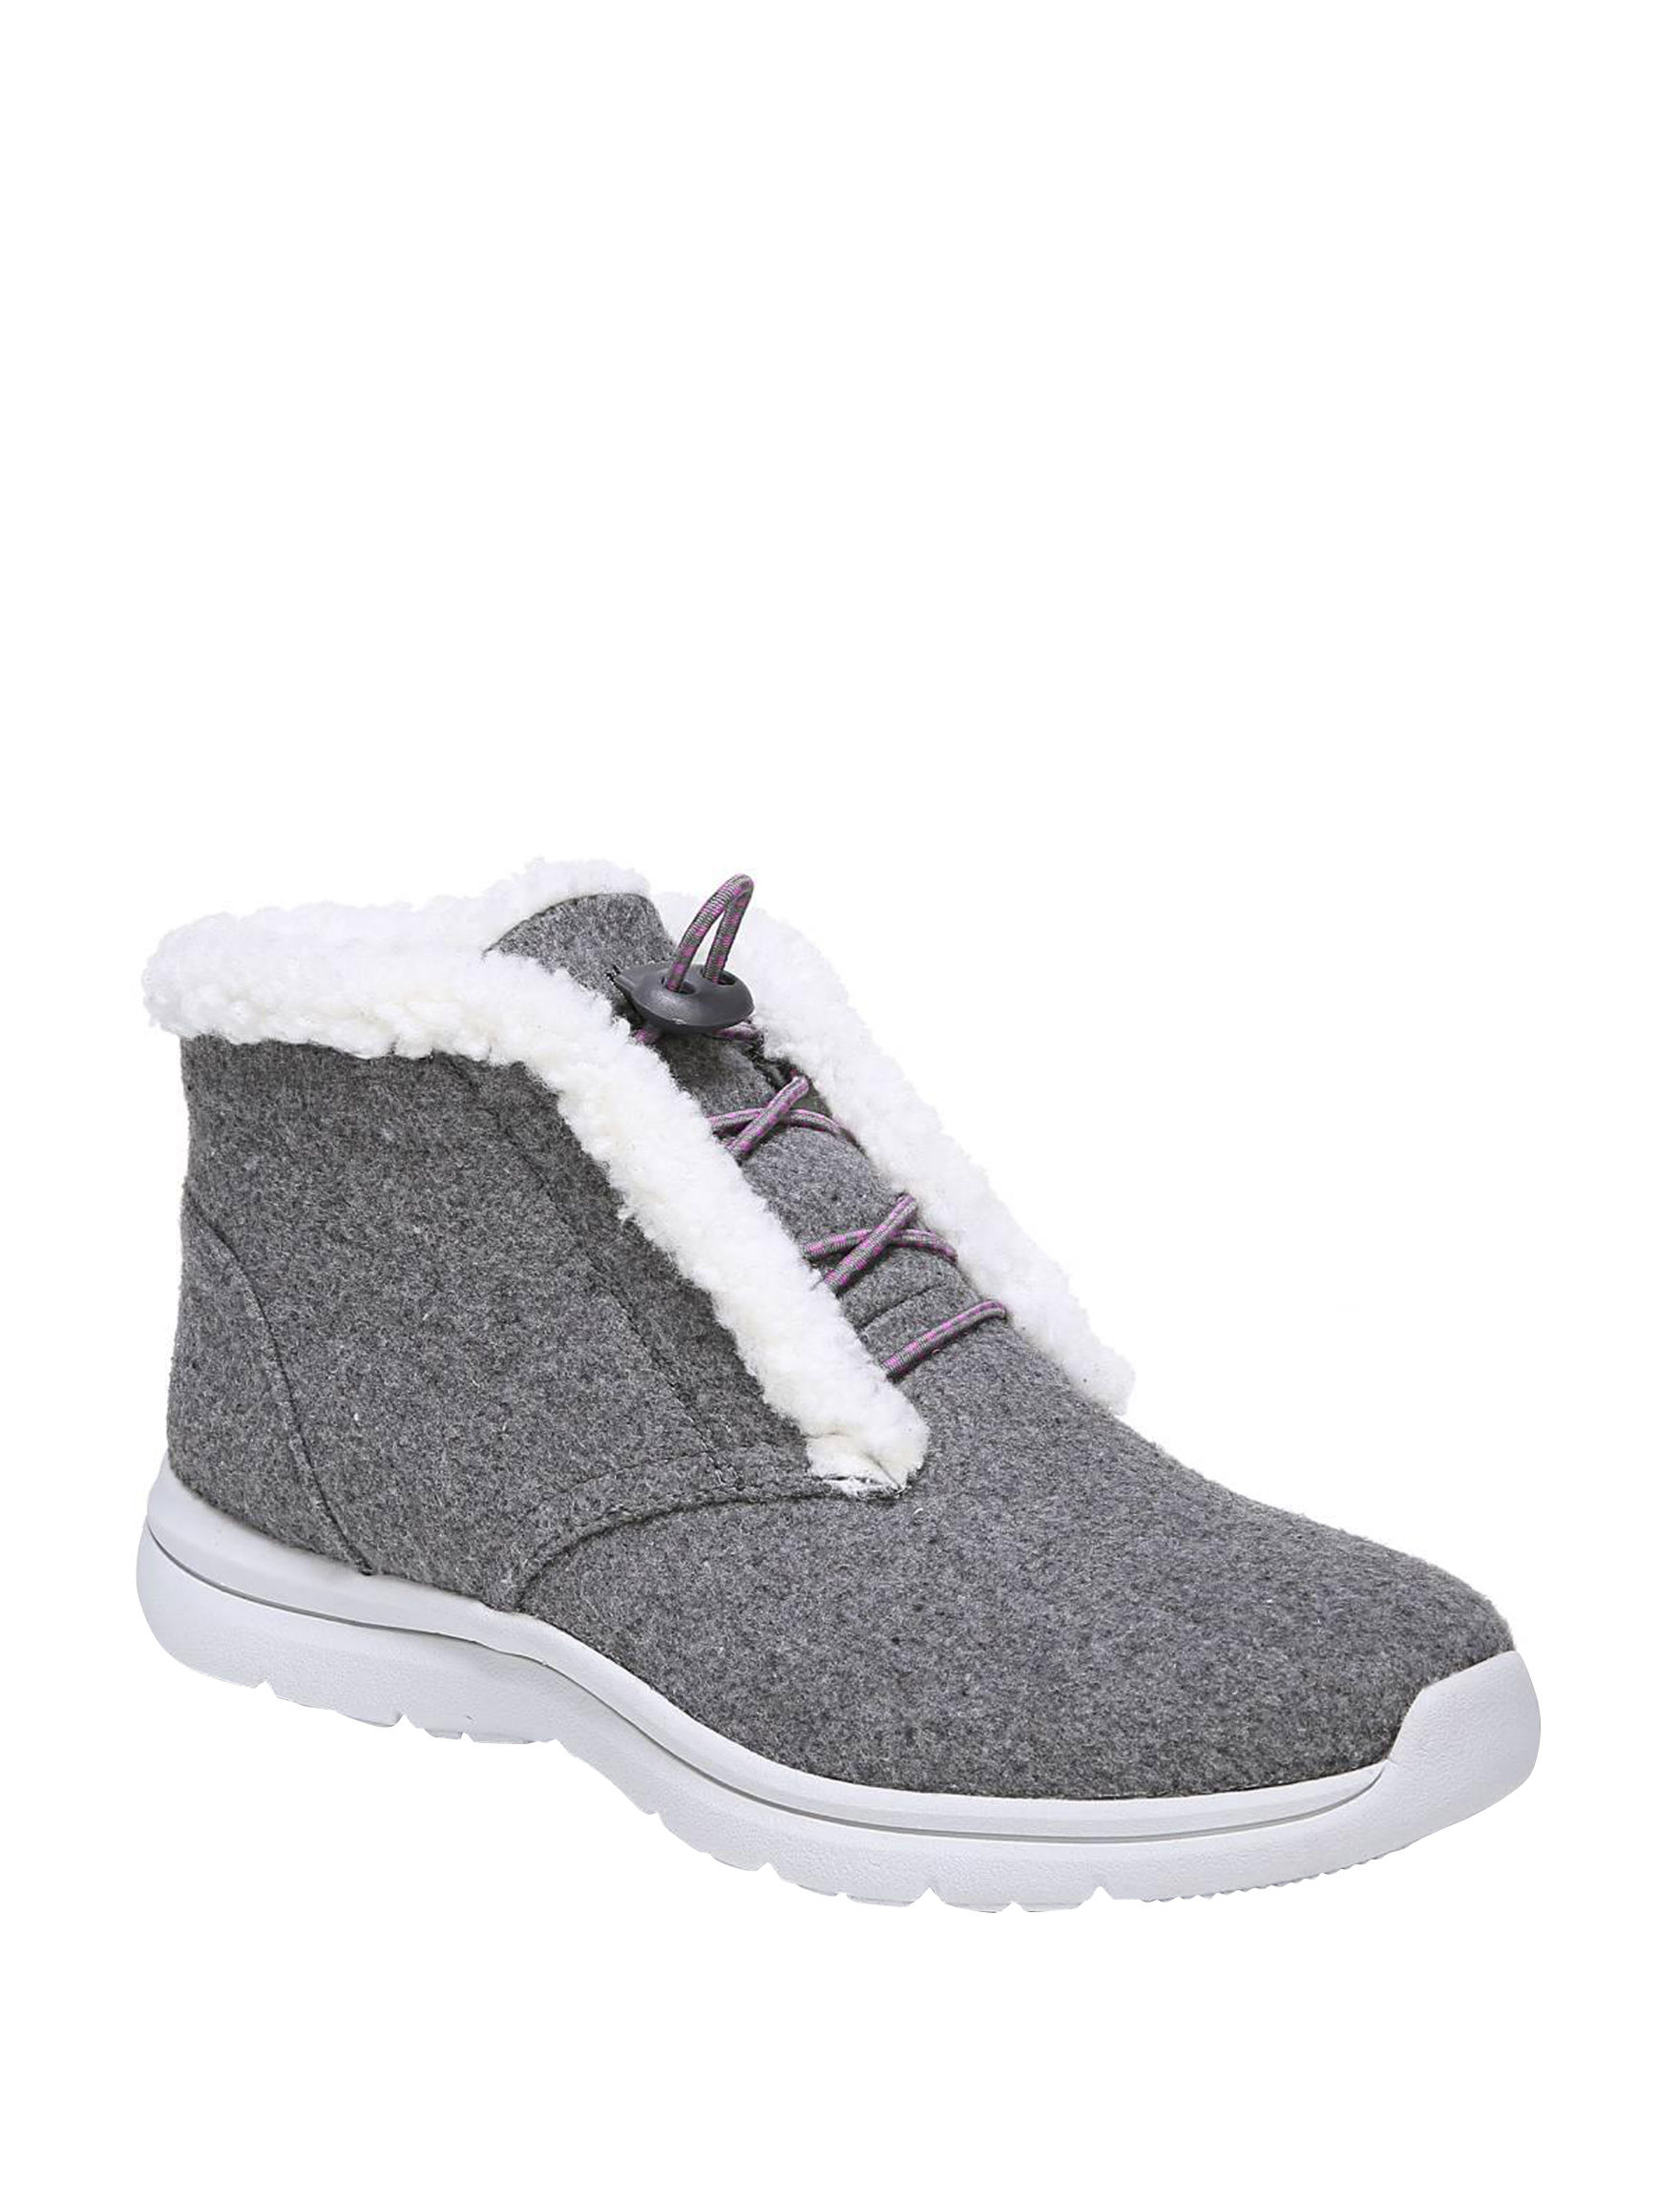 Ryka Grey Ankle Boots & Booties Comfort Shoes Winter Boots